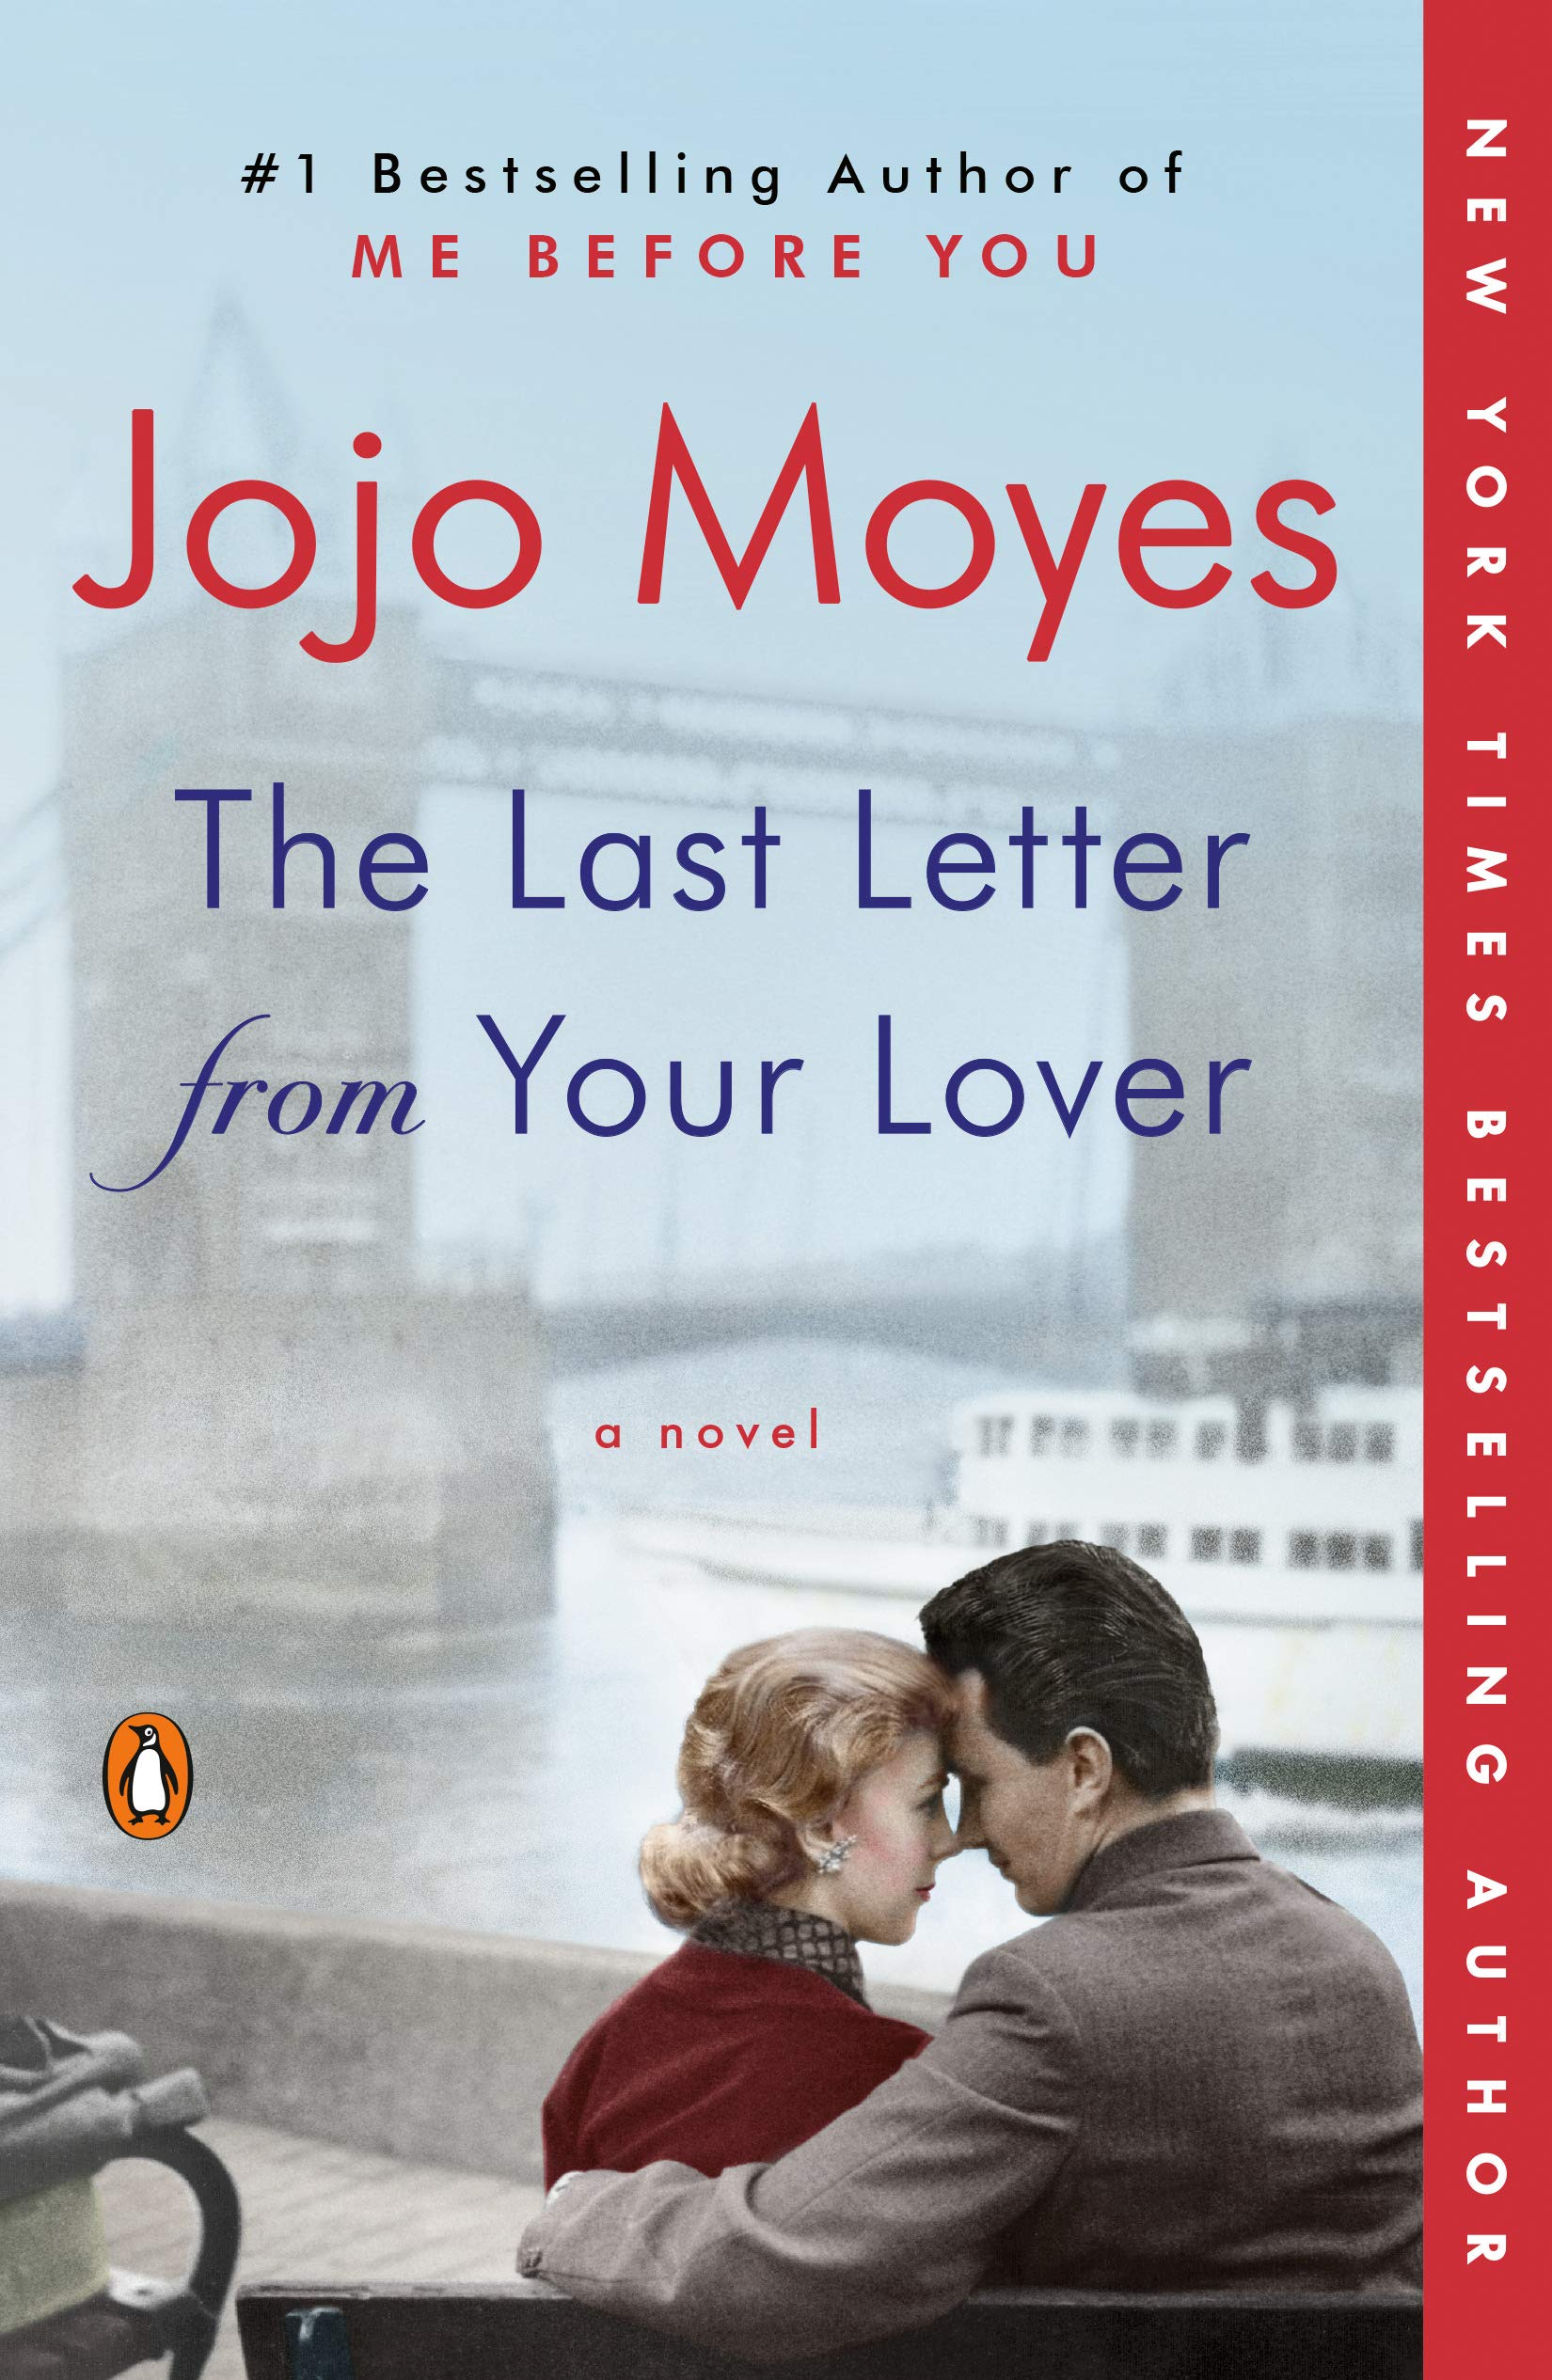 The Last Letter from Your Lover: A Novel: Jojo Moyes ...